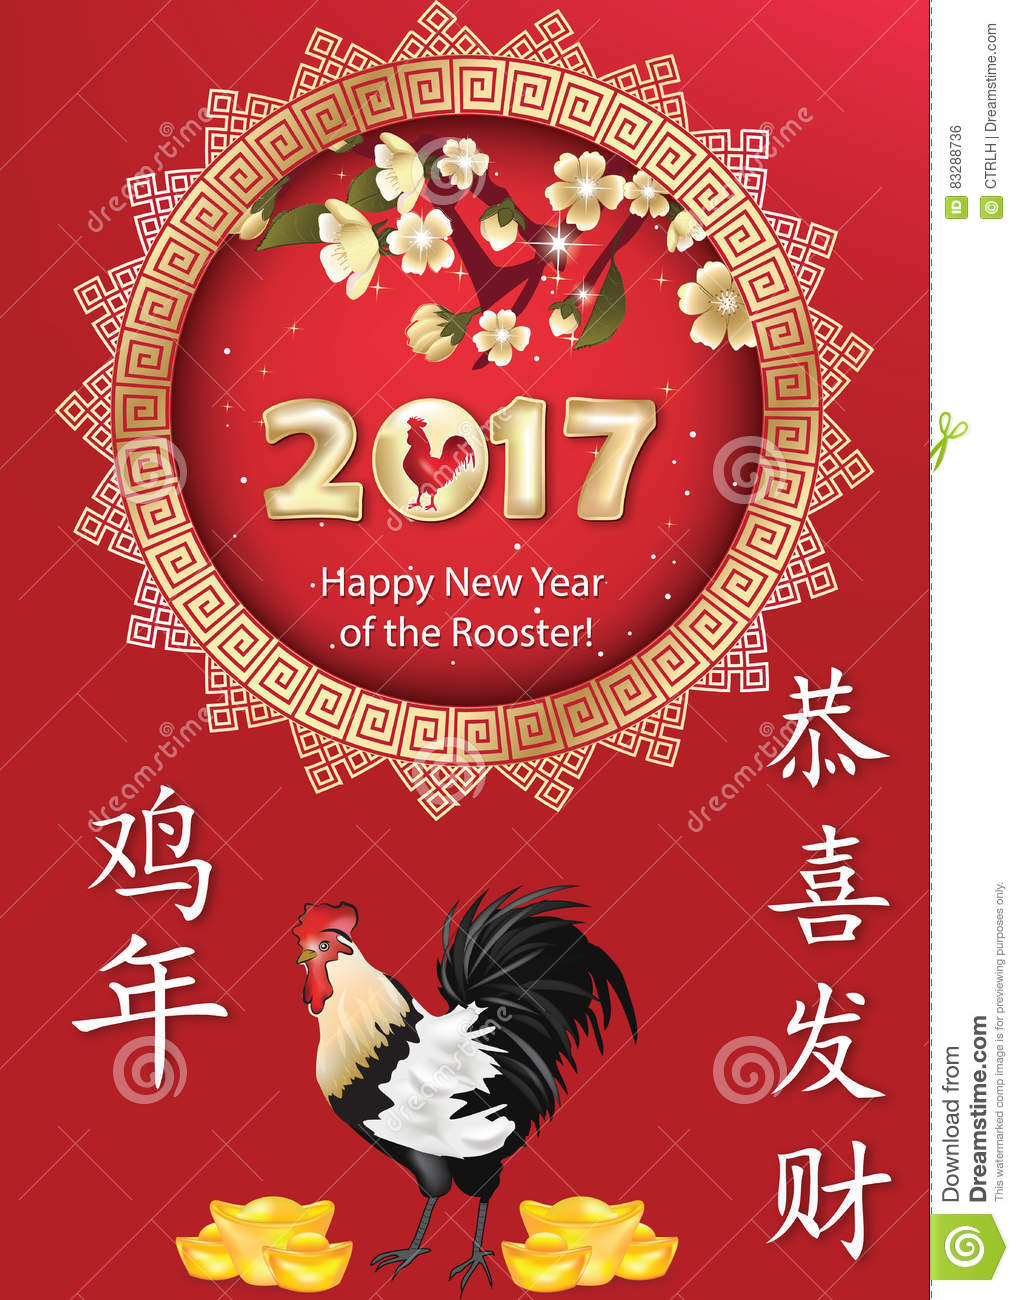 Chinese New Year Of The Rooster 2017 Greeting Card Stock Photo